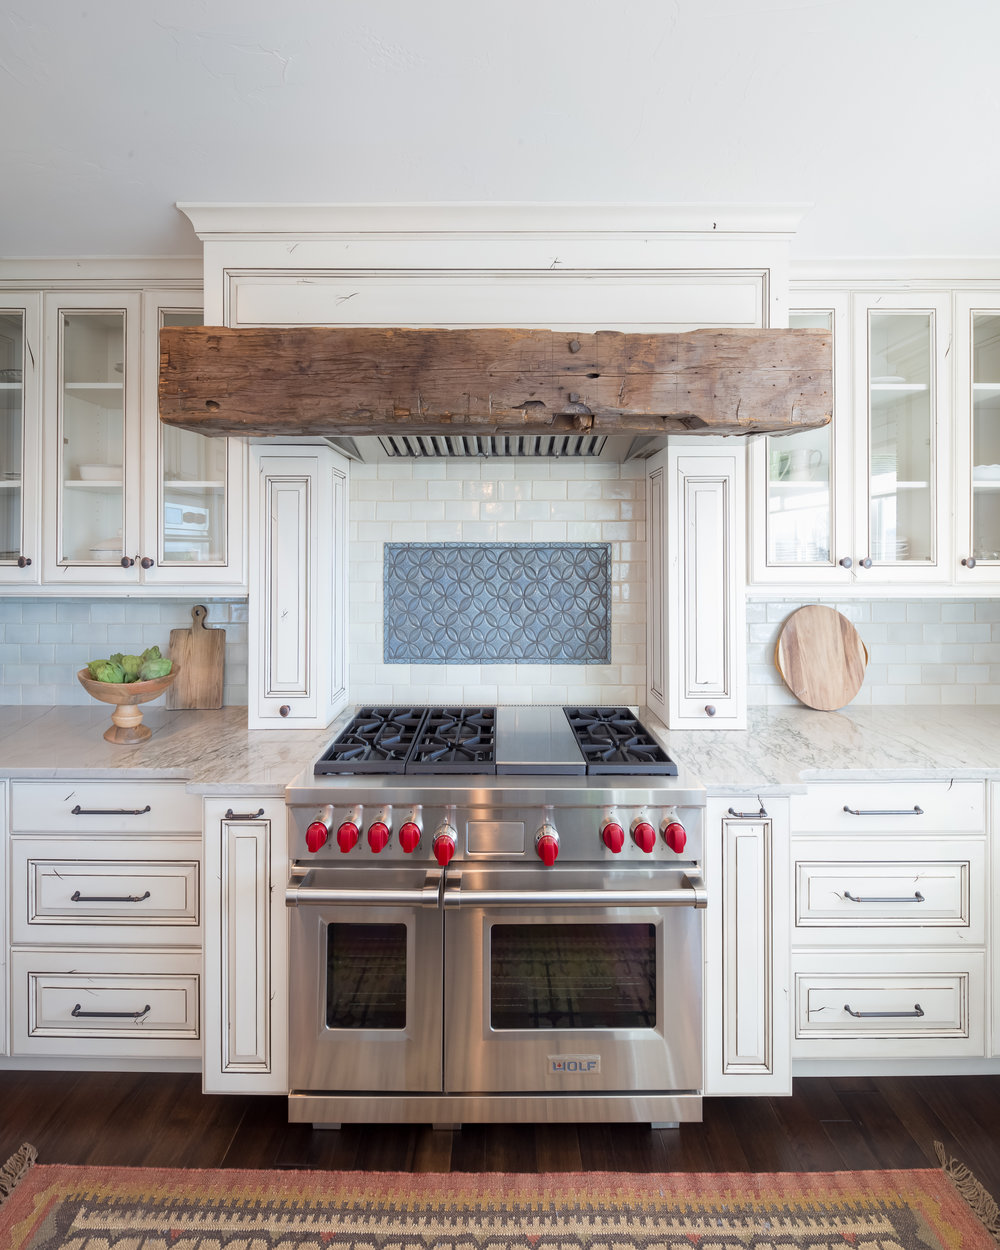 Rustic hood at stove.jpg